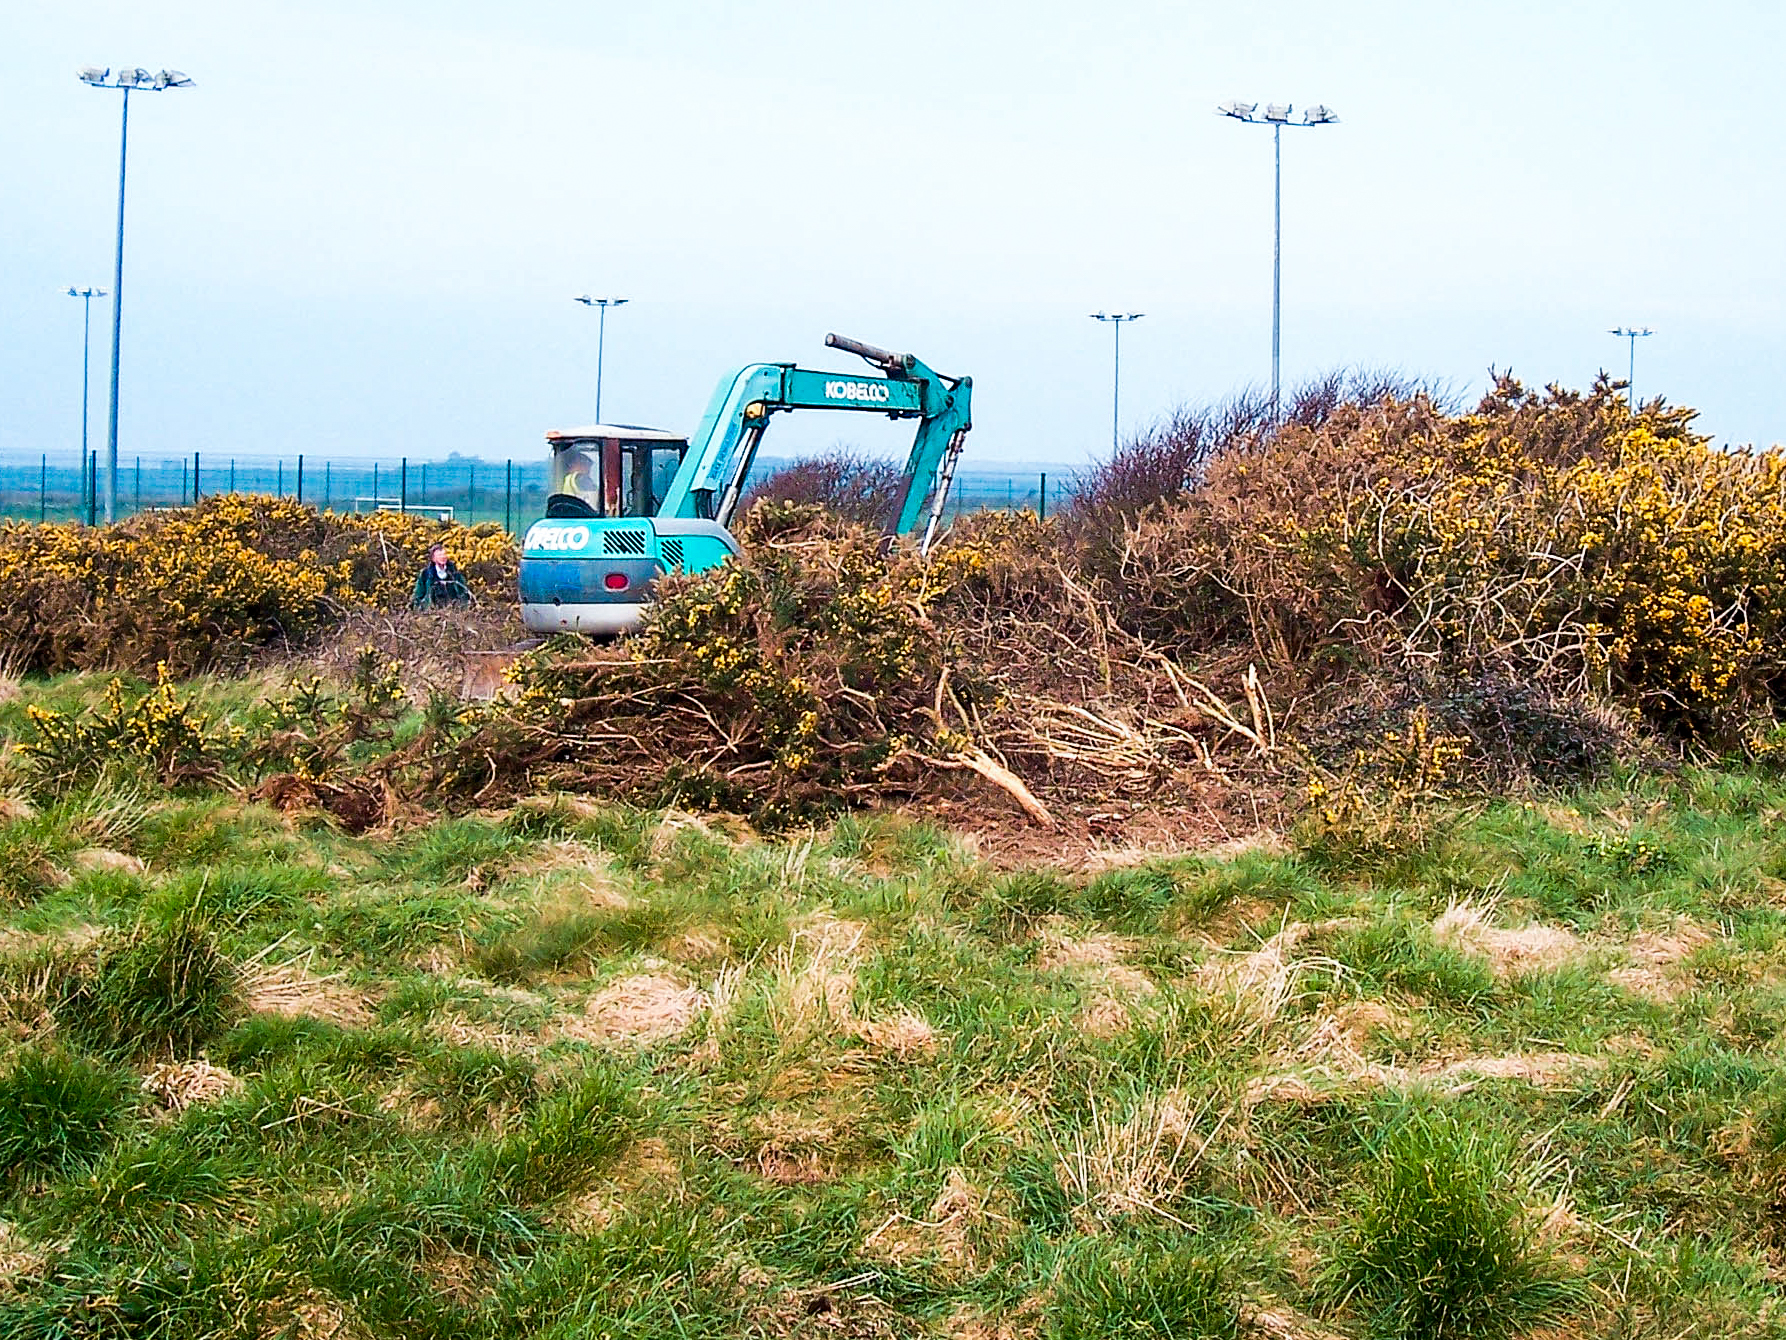 Supervision of the removal of gorse - the kind of impenetrable habitat where setts cannot be identified prior to clearance. Our ecologists ensure that your clearance can proceed whilst keeping your contractors on the right side of the law.